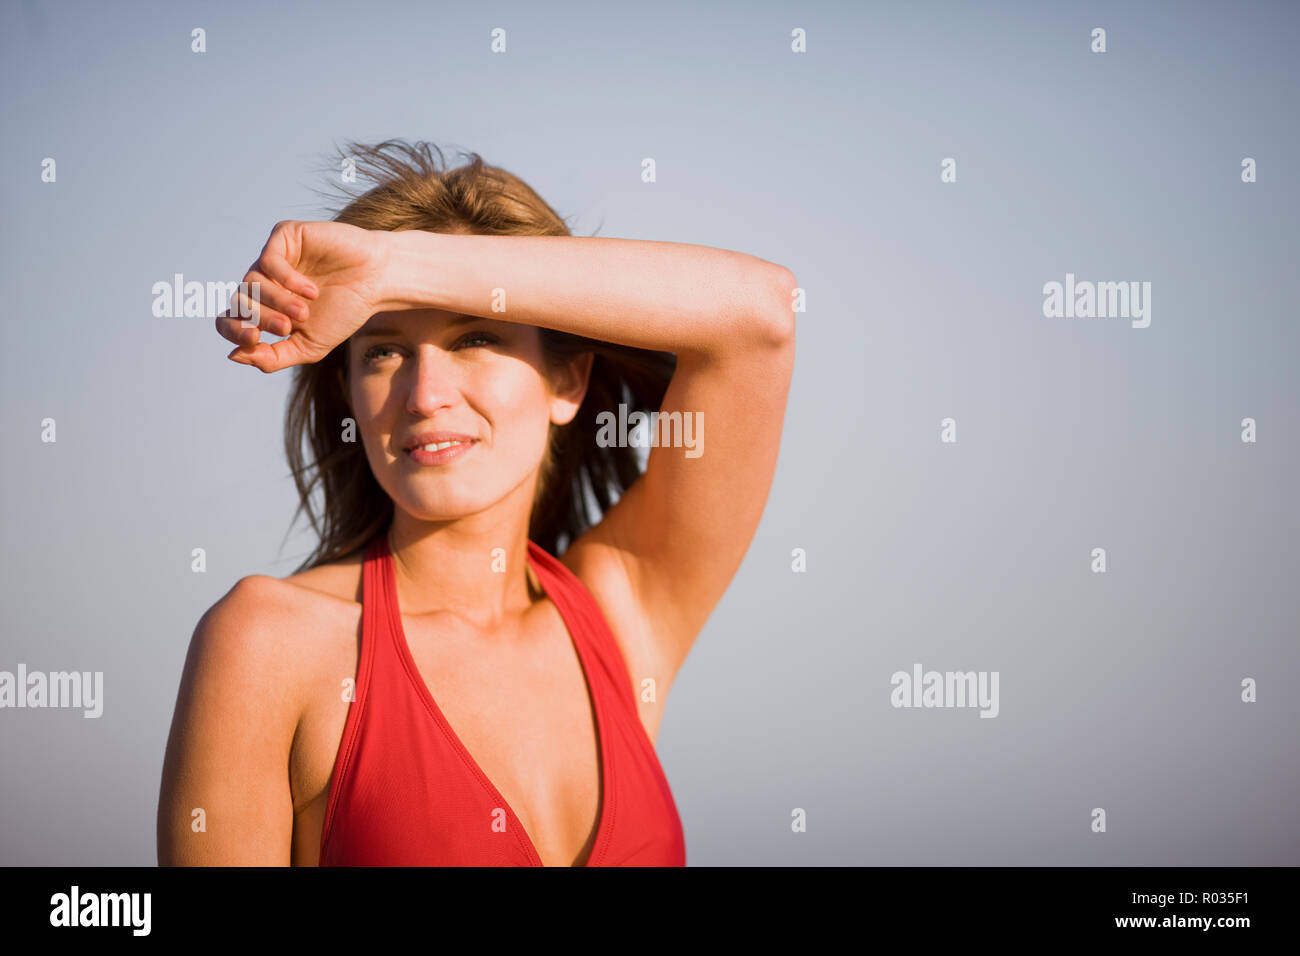 Young blond woman wearing a red bikini - Stock Image